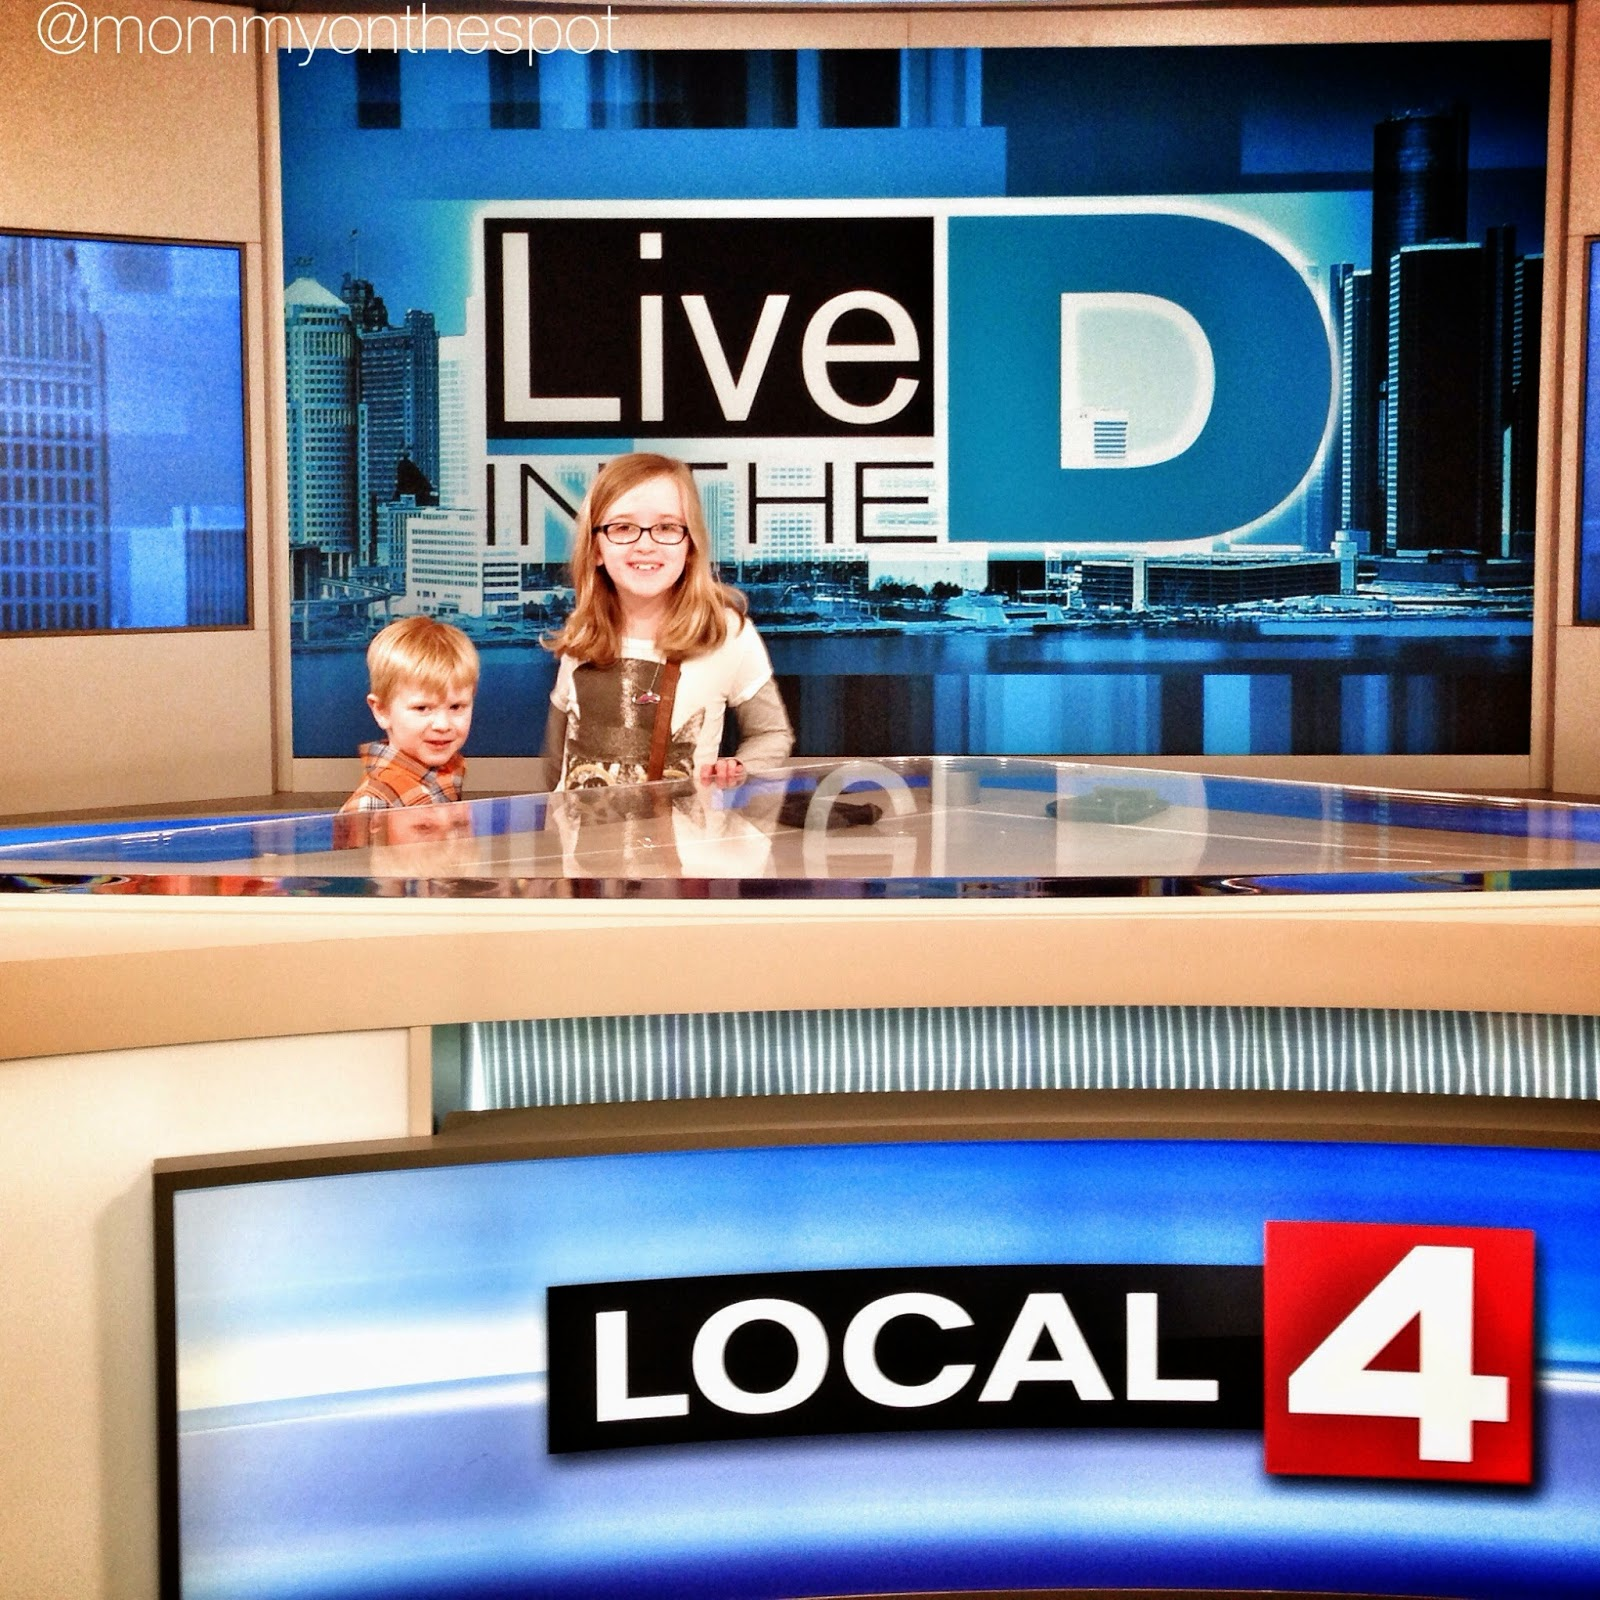 Mommy on the Spot Erin Janda Rawlings Staycation Live in the D Local 4